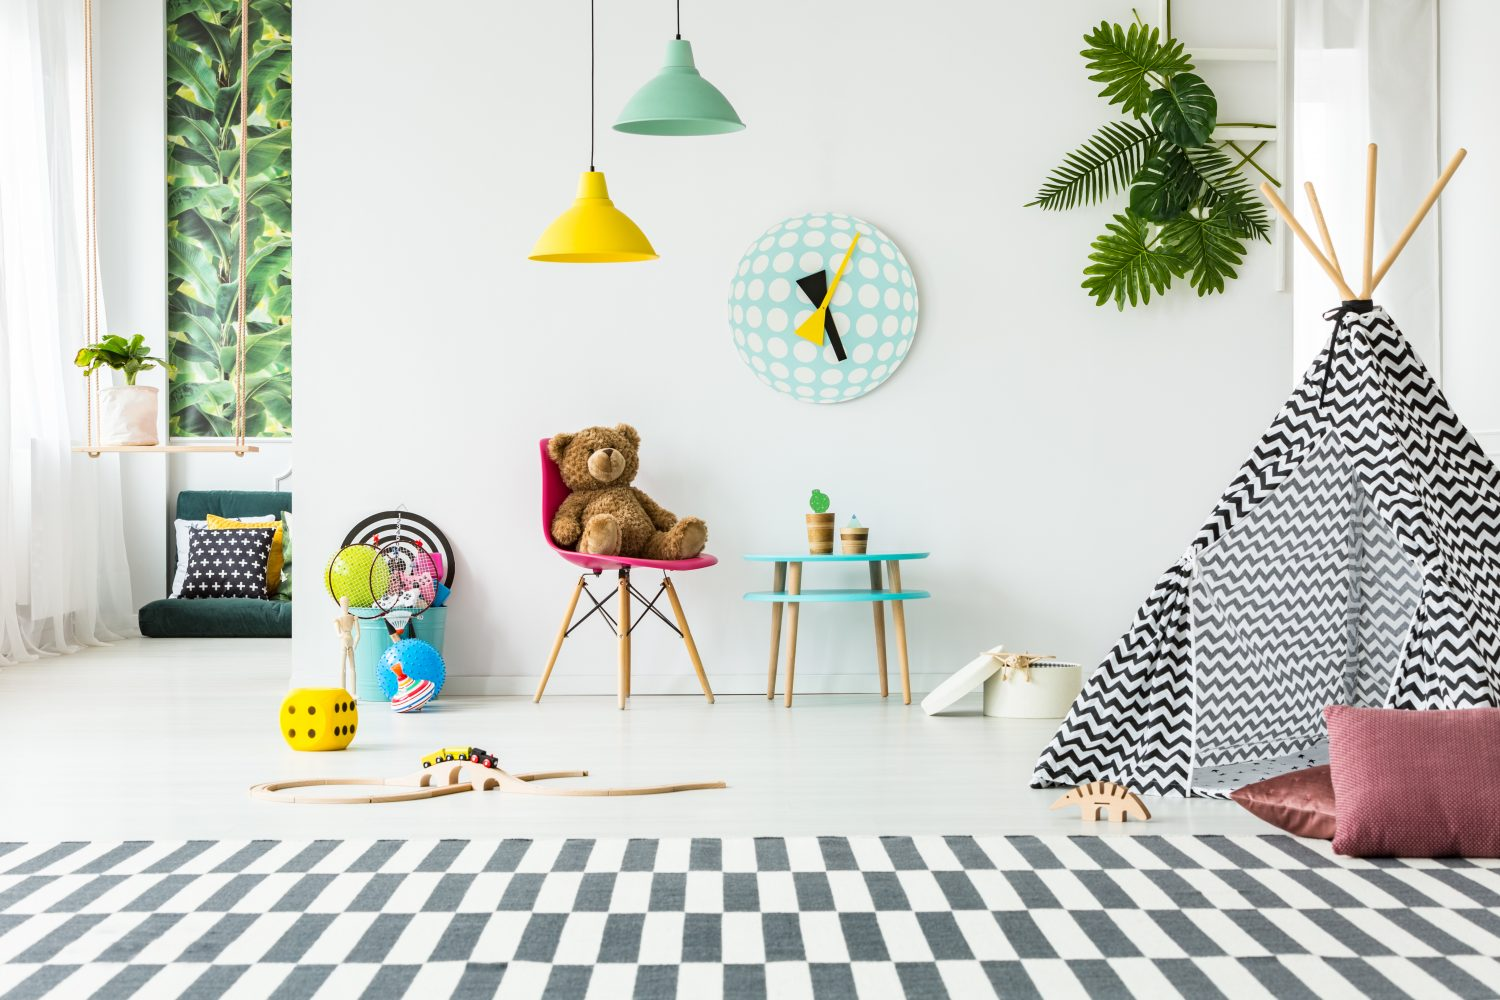 home decor, children, kids, gardening, designing a child's room, kid friendly home, kid friendly decor, mom blog, mom blogger, mommy blog, mommy blogger, 2018